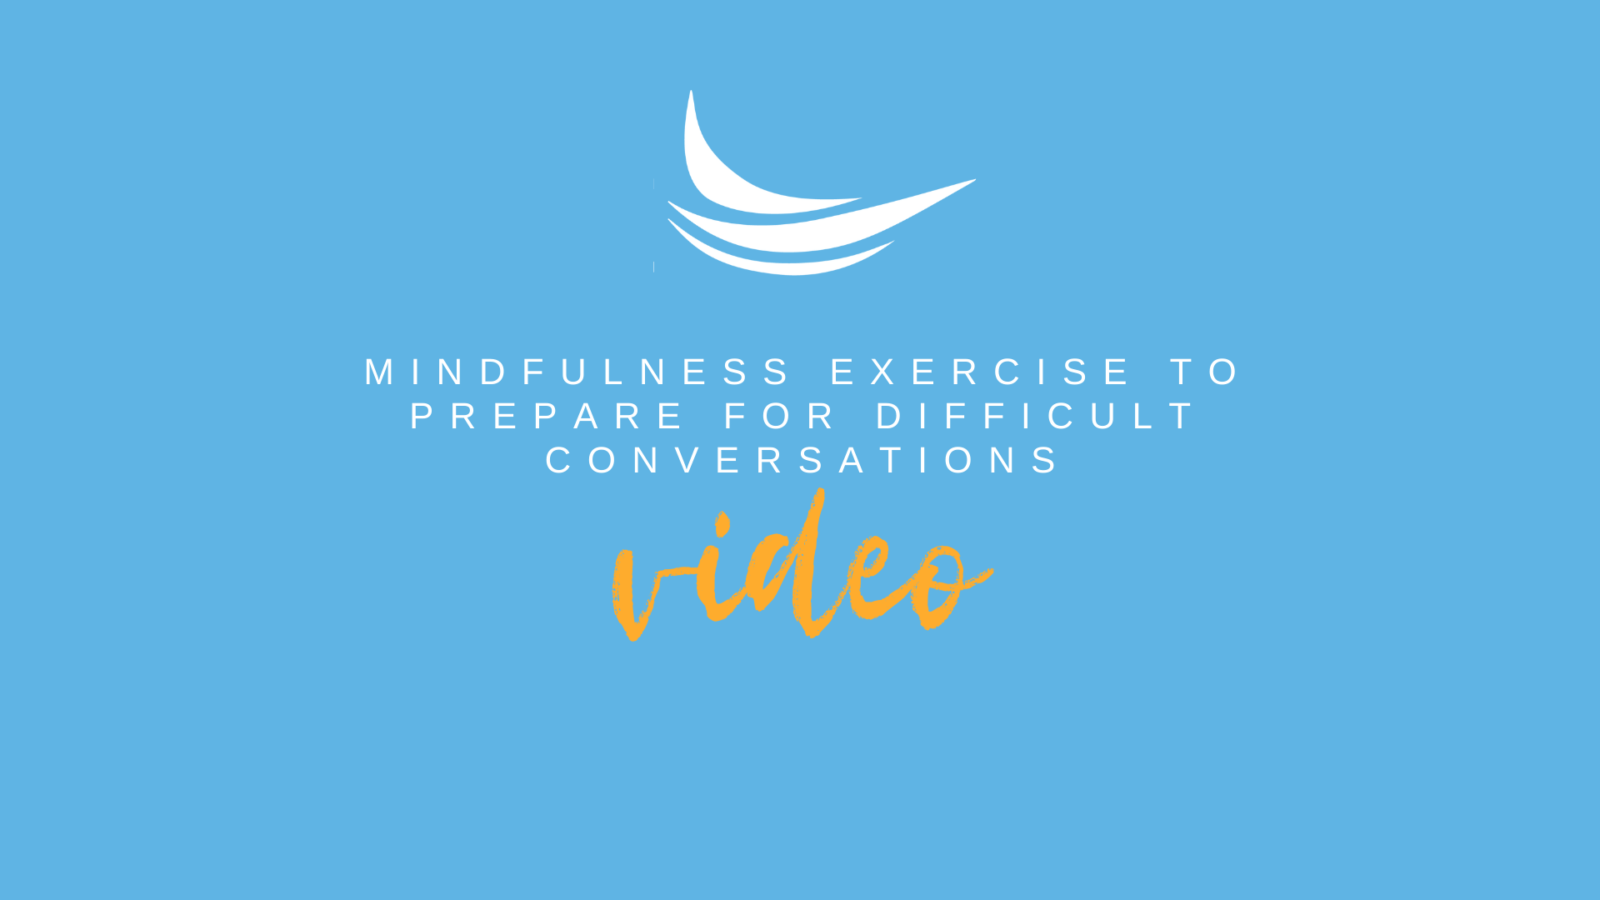 Mindfulness Exercise To Prepare For Difficult Conversations